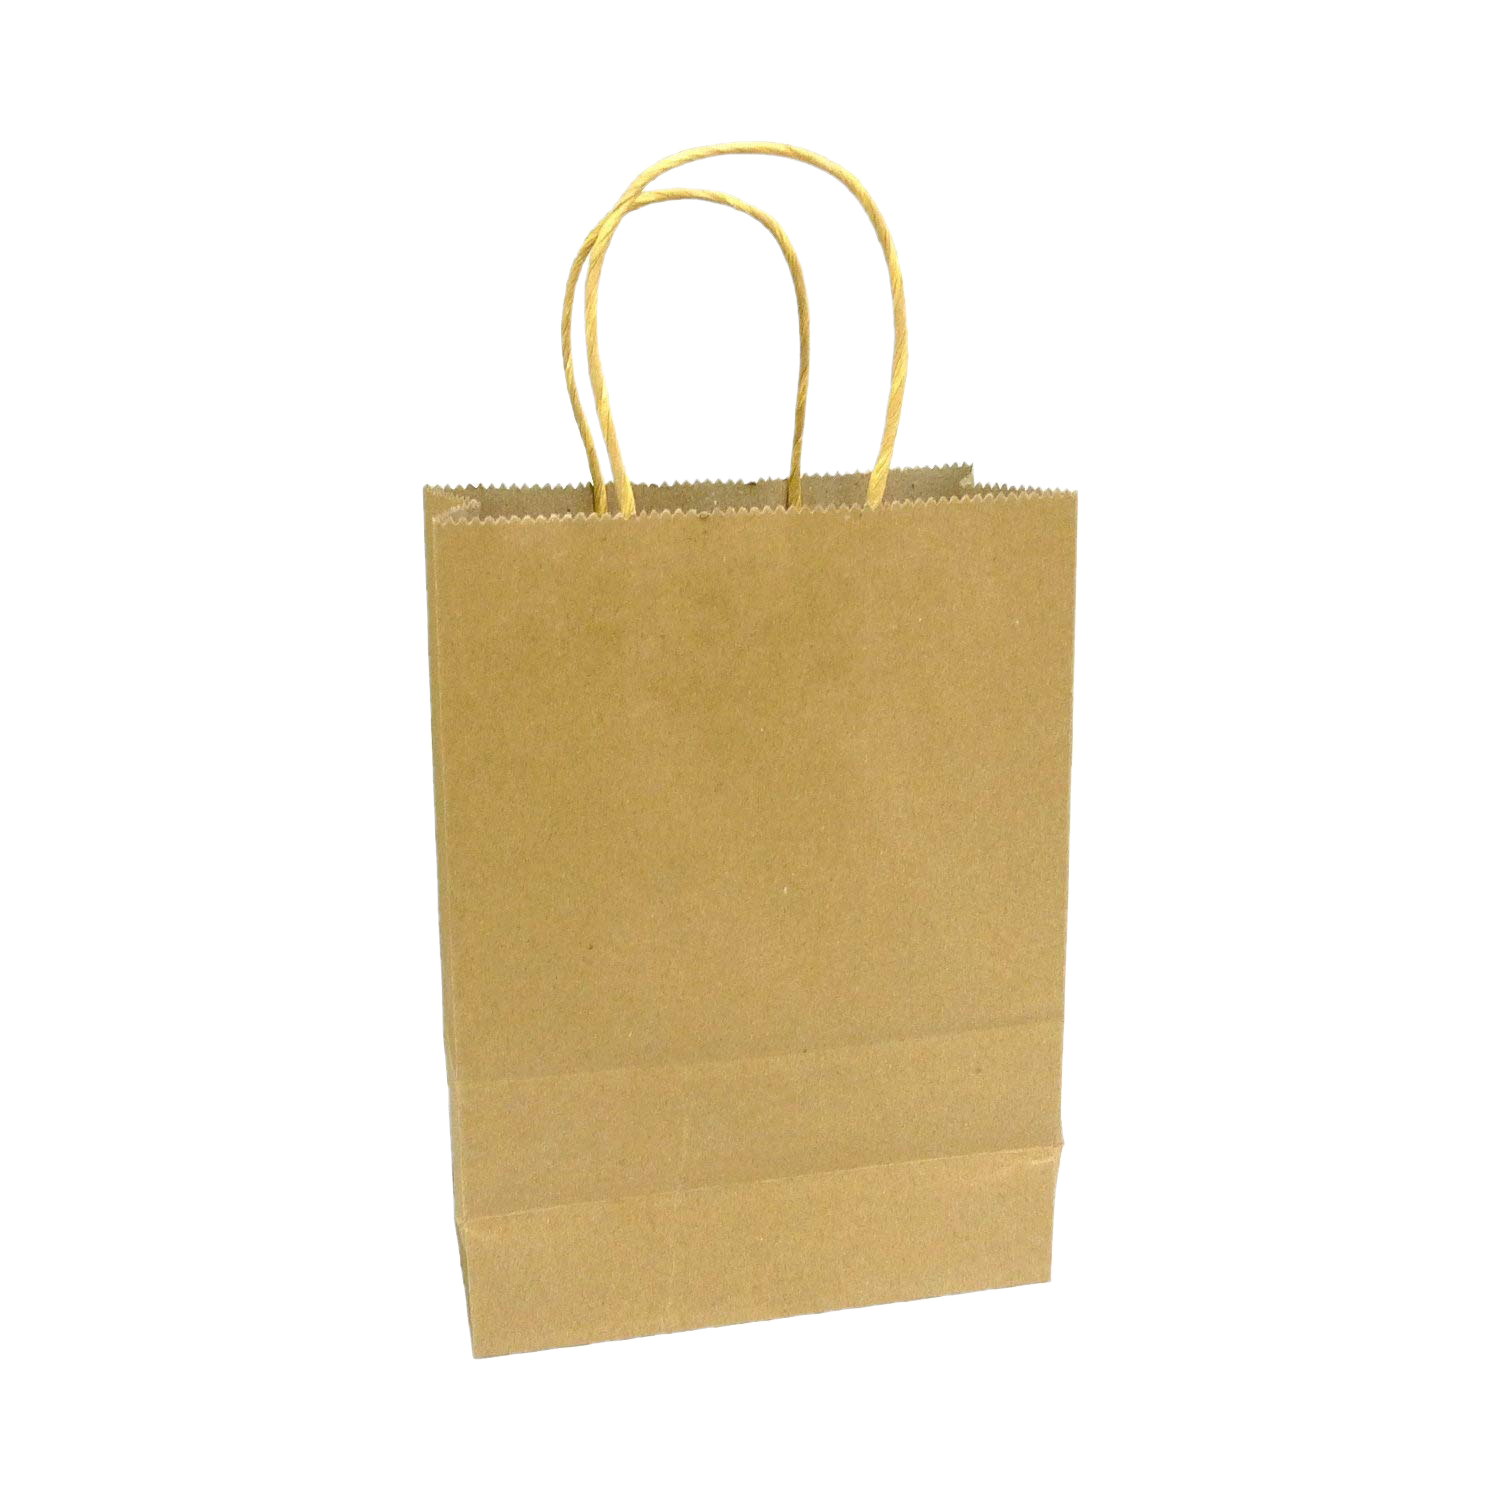 20 X Brown Paper Bags With Handles Party And Birthday Gift A Handy Bag 15cm X 21cm X 8cm